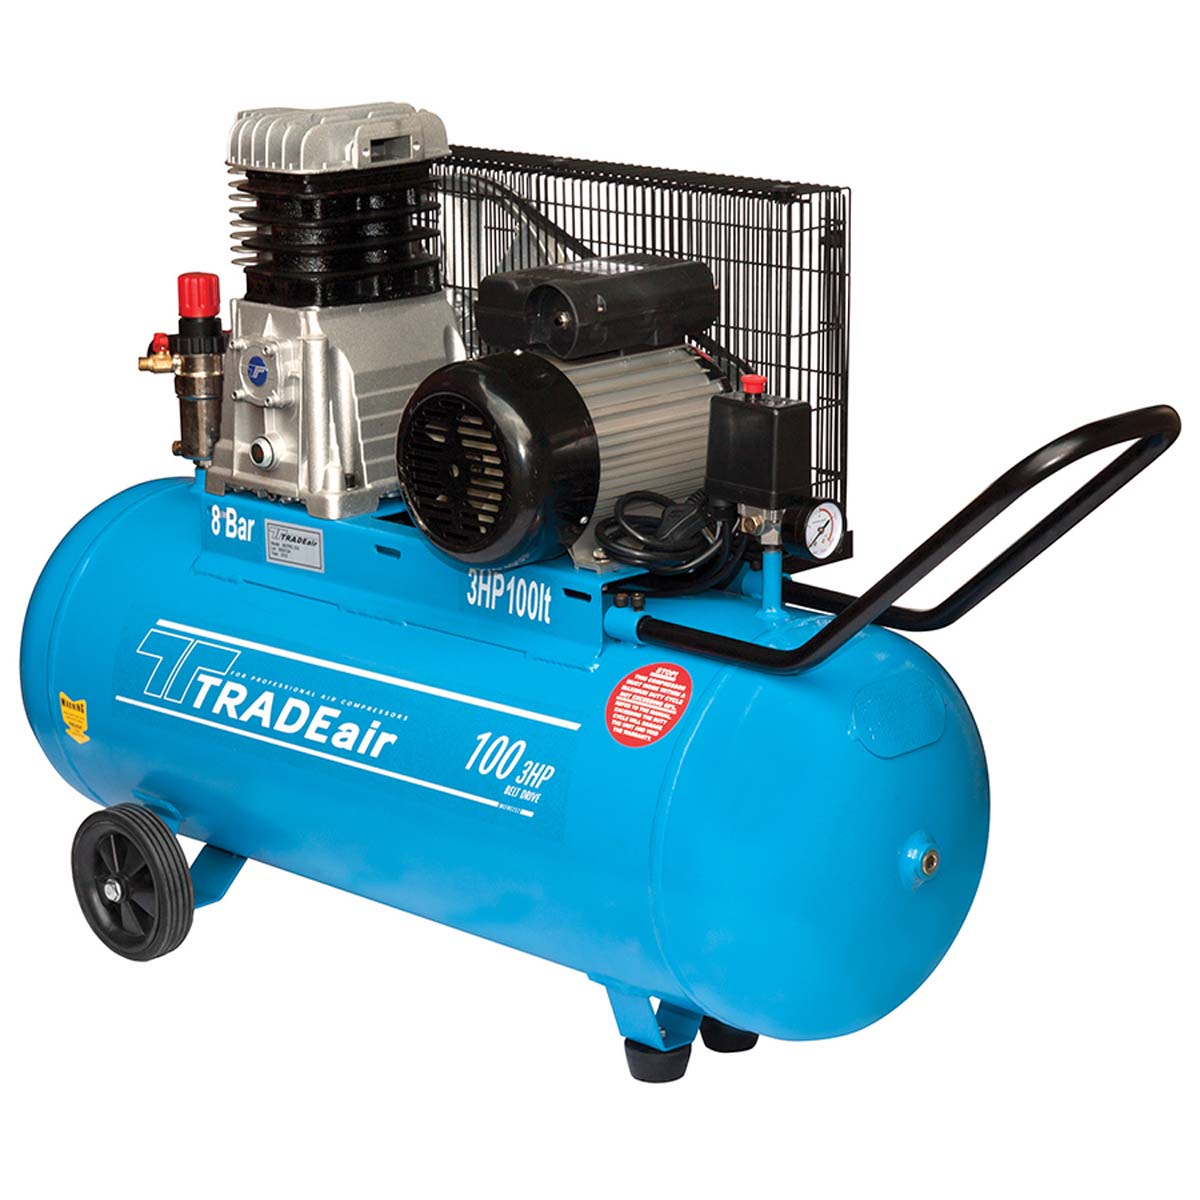 tradeair-c232-compressor